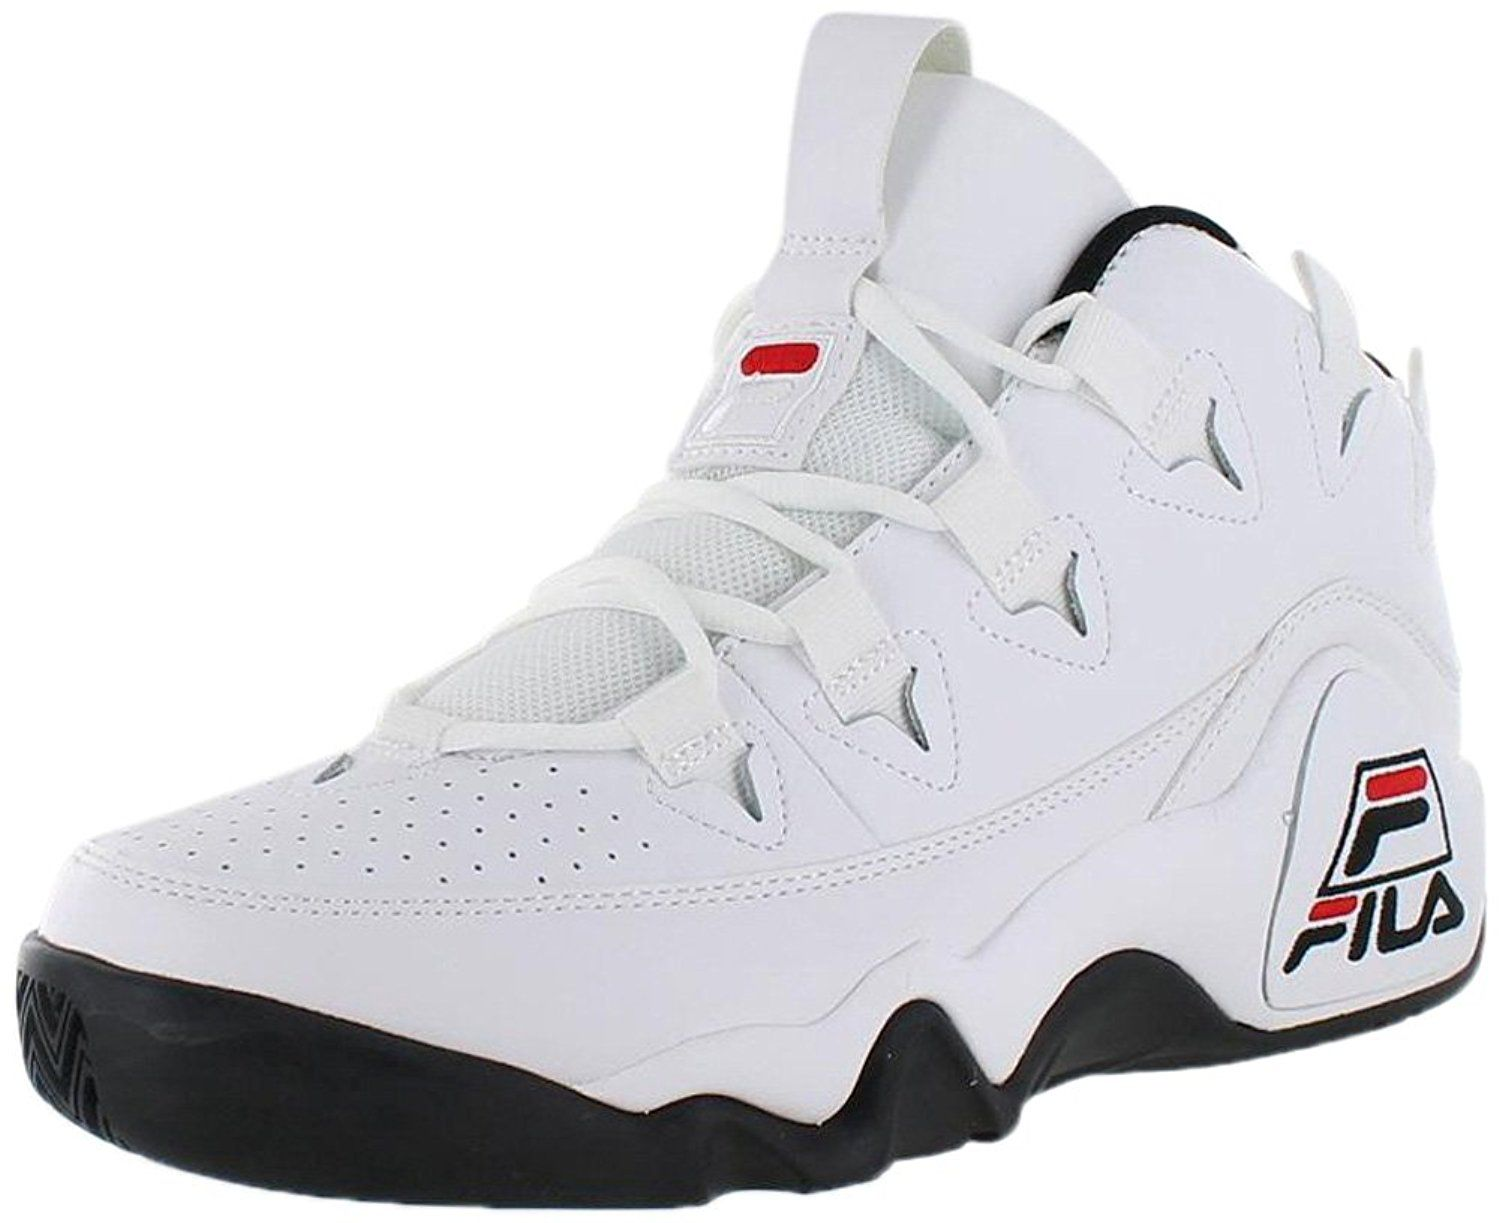 a947bd20fb7f7 Amazon.com | Fila The 95 Grant Hill Men's Retro Basketball Sneakers ...